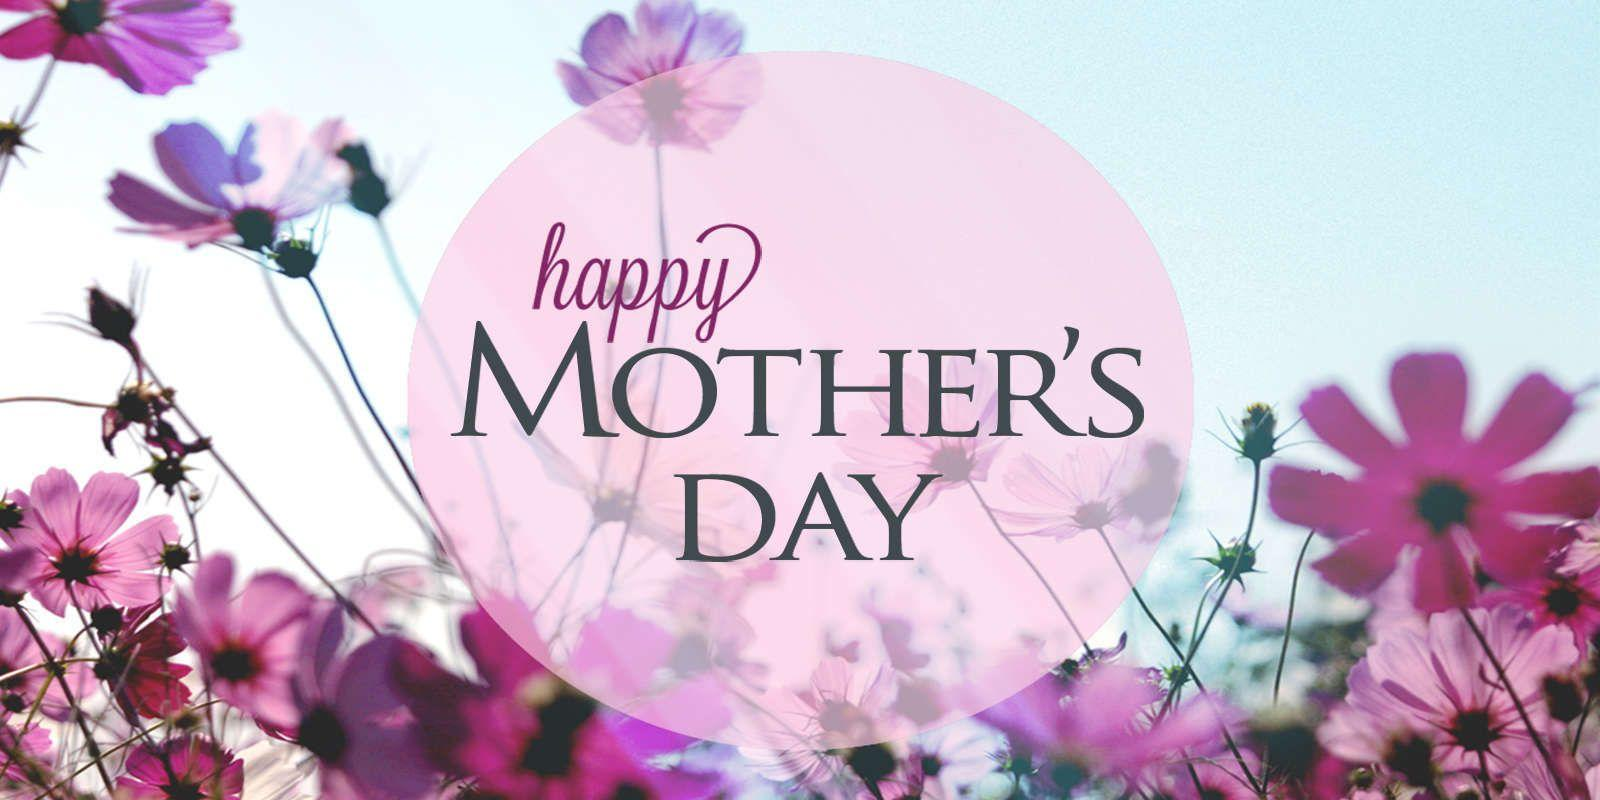 ADVANCE HAPPY MOTHERS DAY HD WALLPAPER FOR FACEBOOK AND WHATSAPP ...